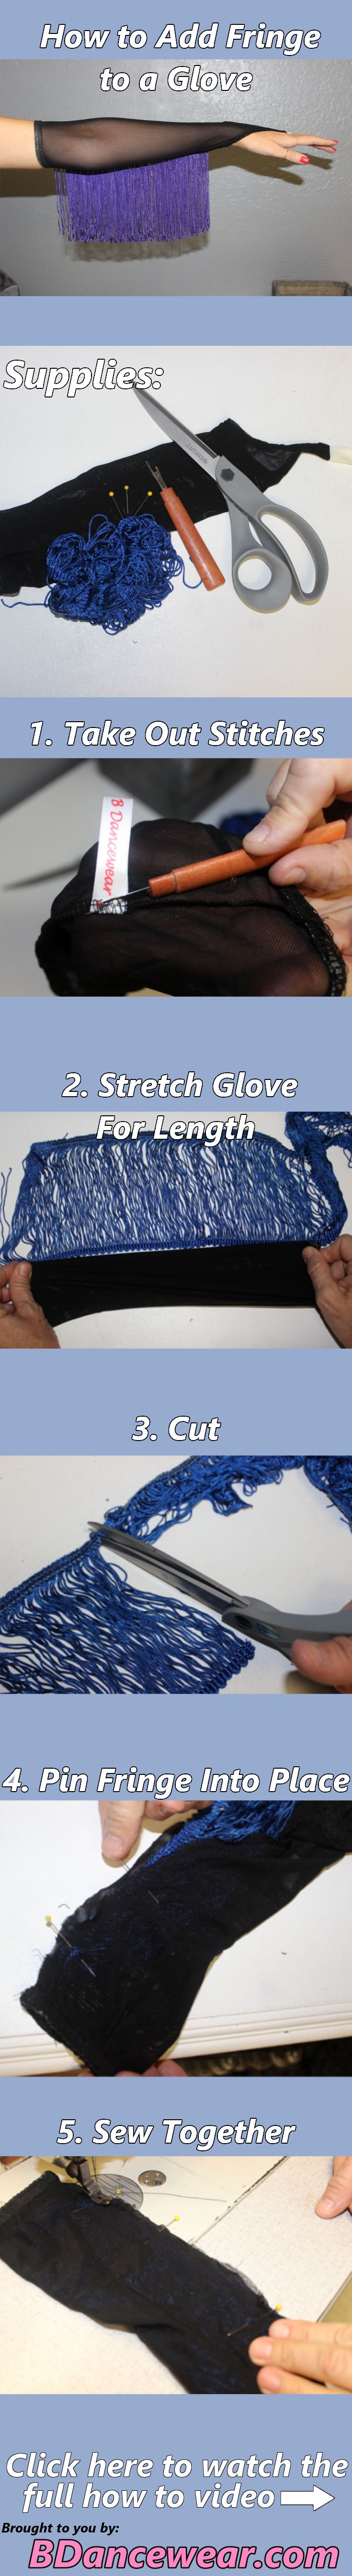 DIY Dance Costume How to Add Fringe to a Glove